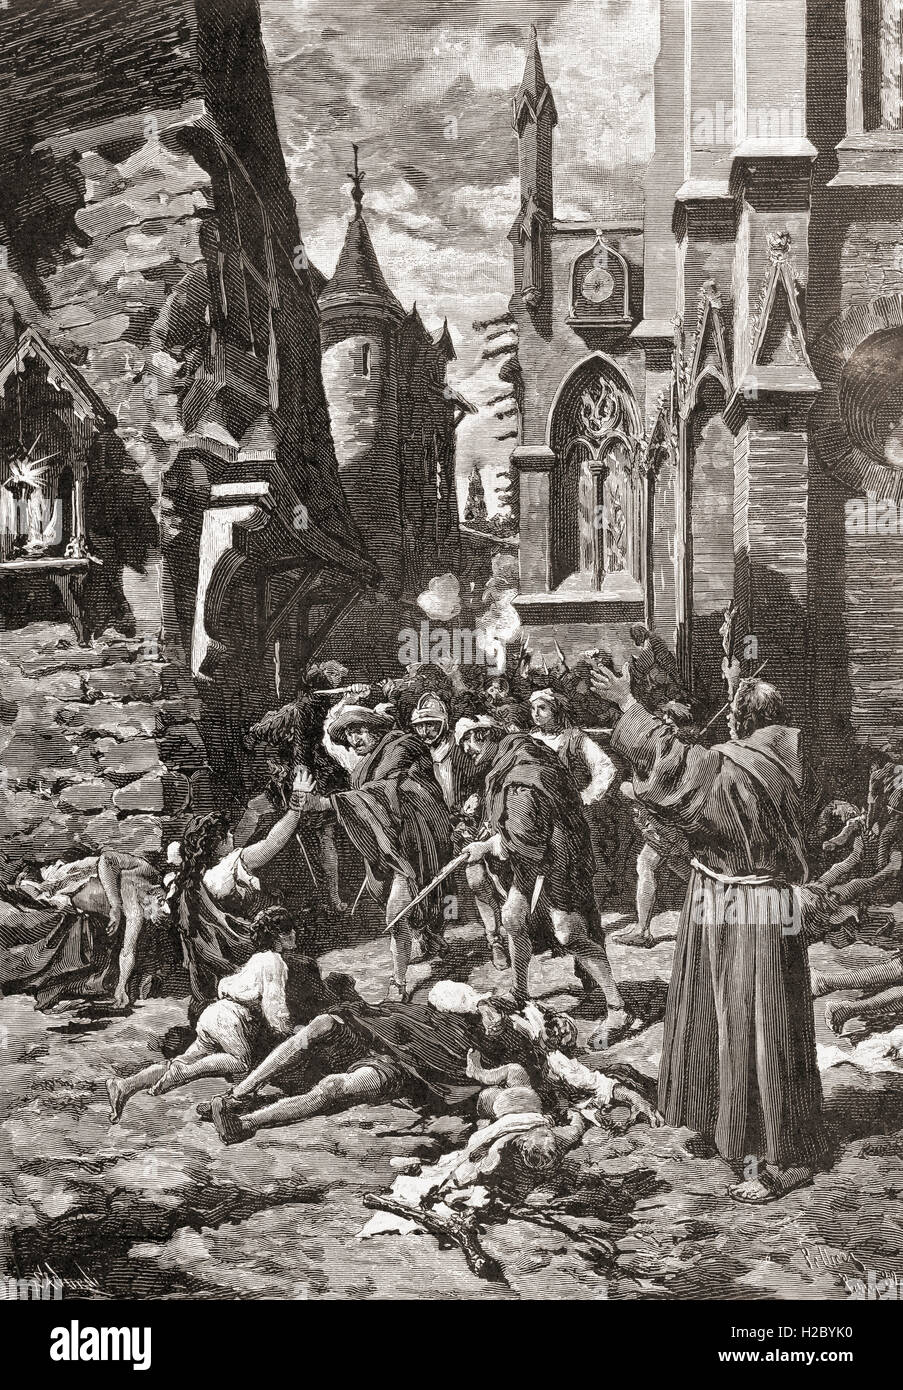 The St. Bartholomew's Day massacre in Paris, France in 1572, a targeted group of assassinations and a wave of Catholic mob violence, directed against the Huguenots (French Calvinist Protestants) during the French Wars of Religion. Stock Photo